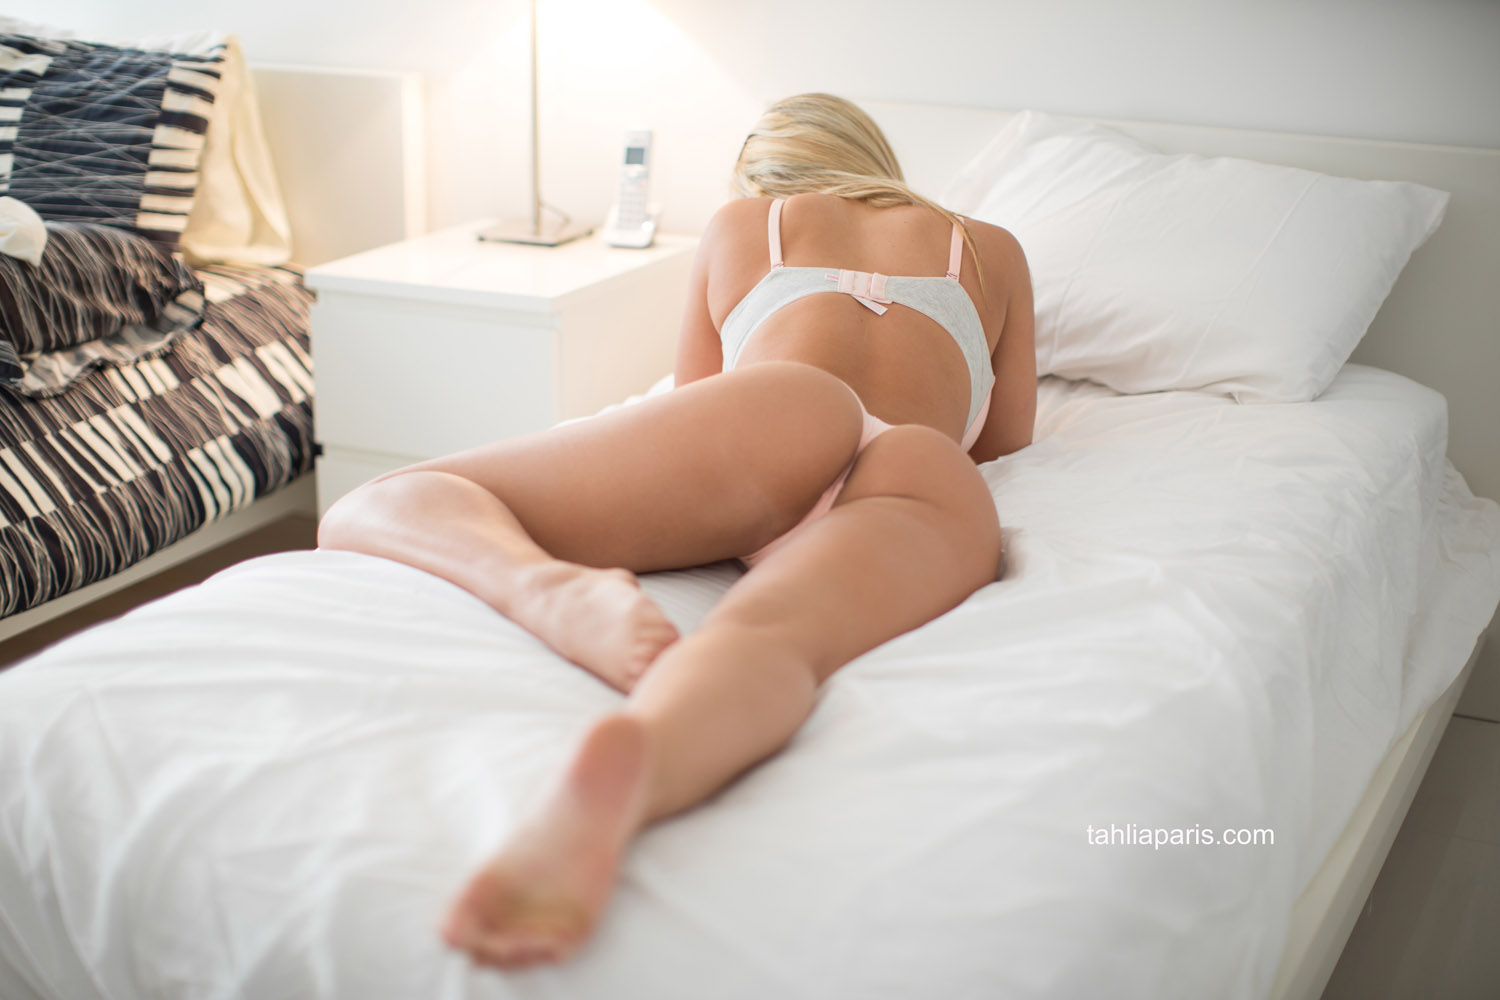 naked-girls-in-bedroom-nude-mix-vol4-46